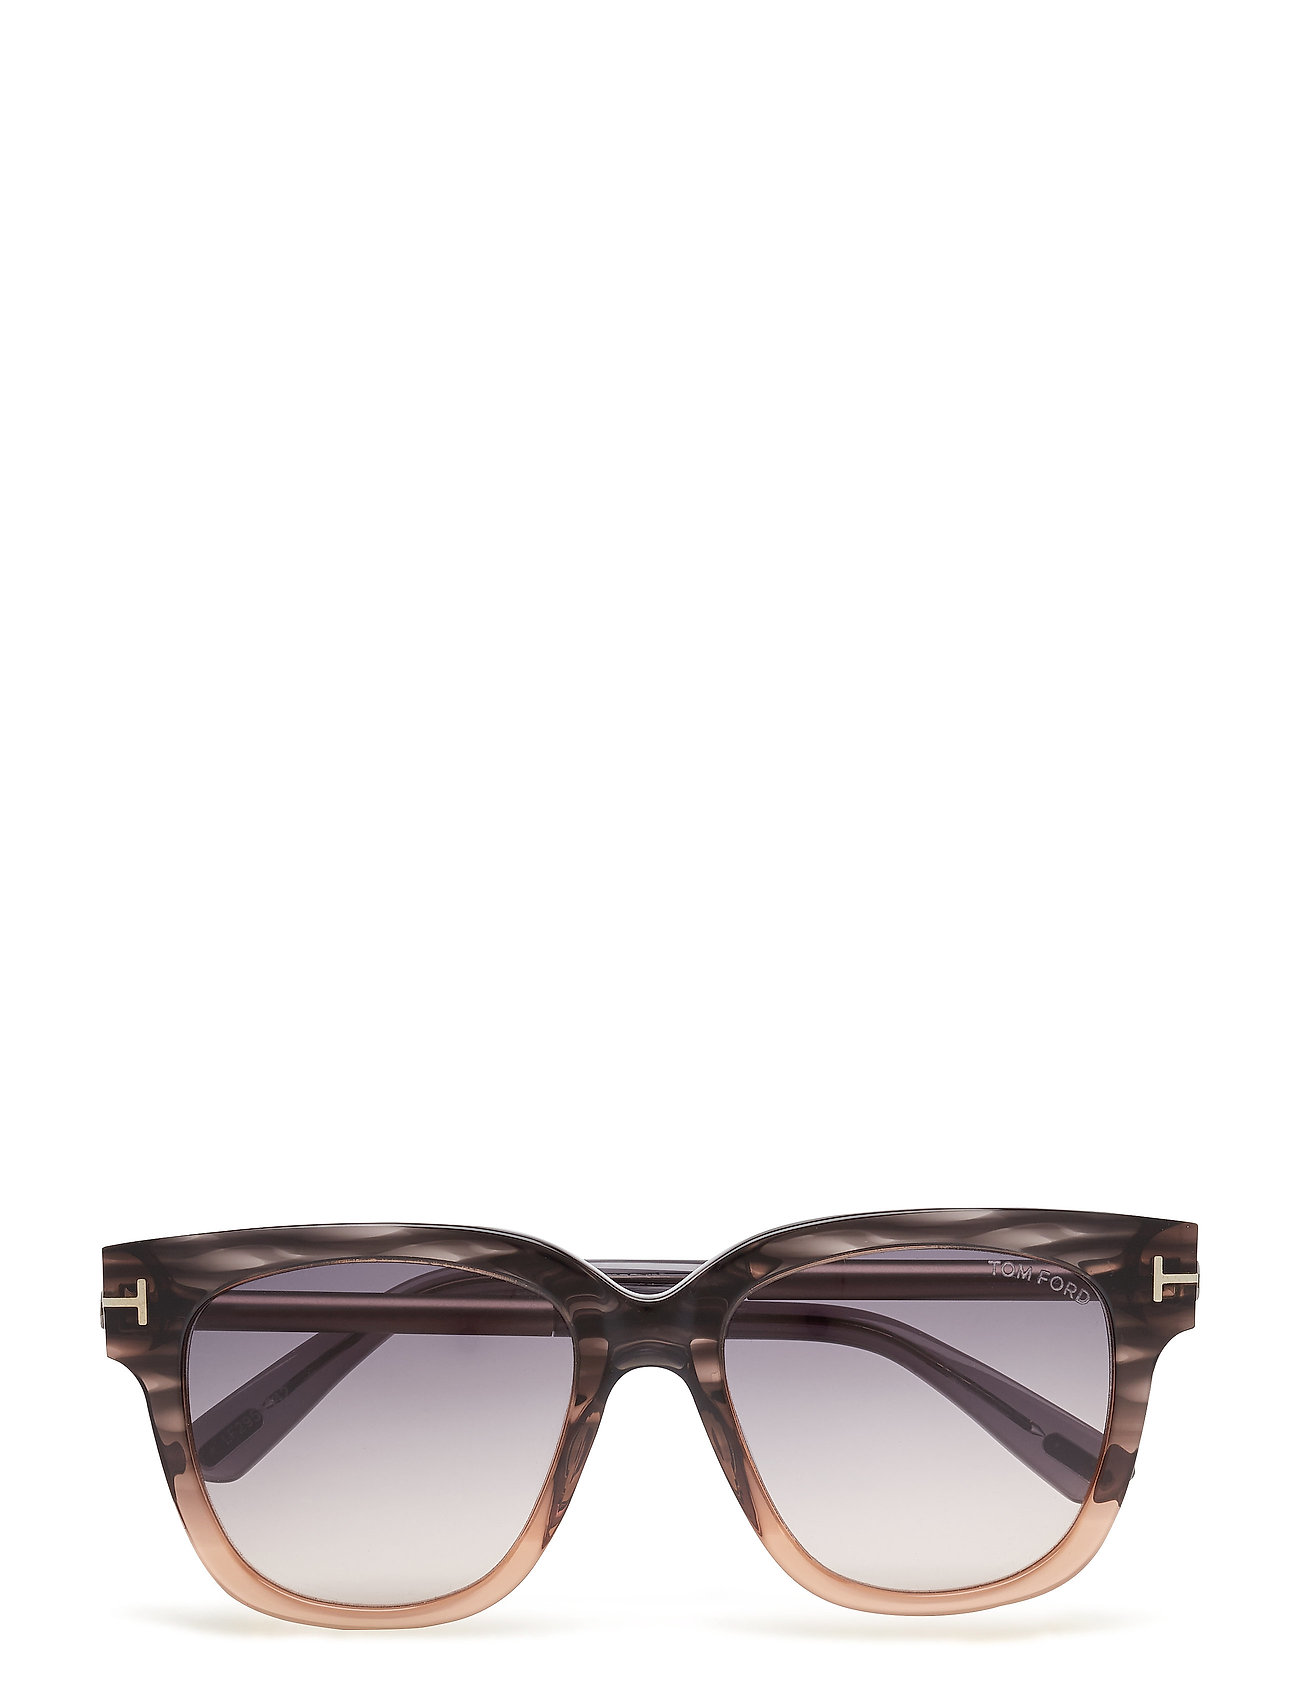 6771cd9b2919 Tom Ford Sunglasses wayfarer solbriller – Tom Ford Tracey til dame i ...